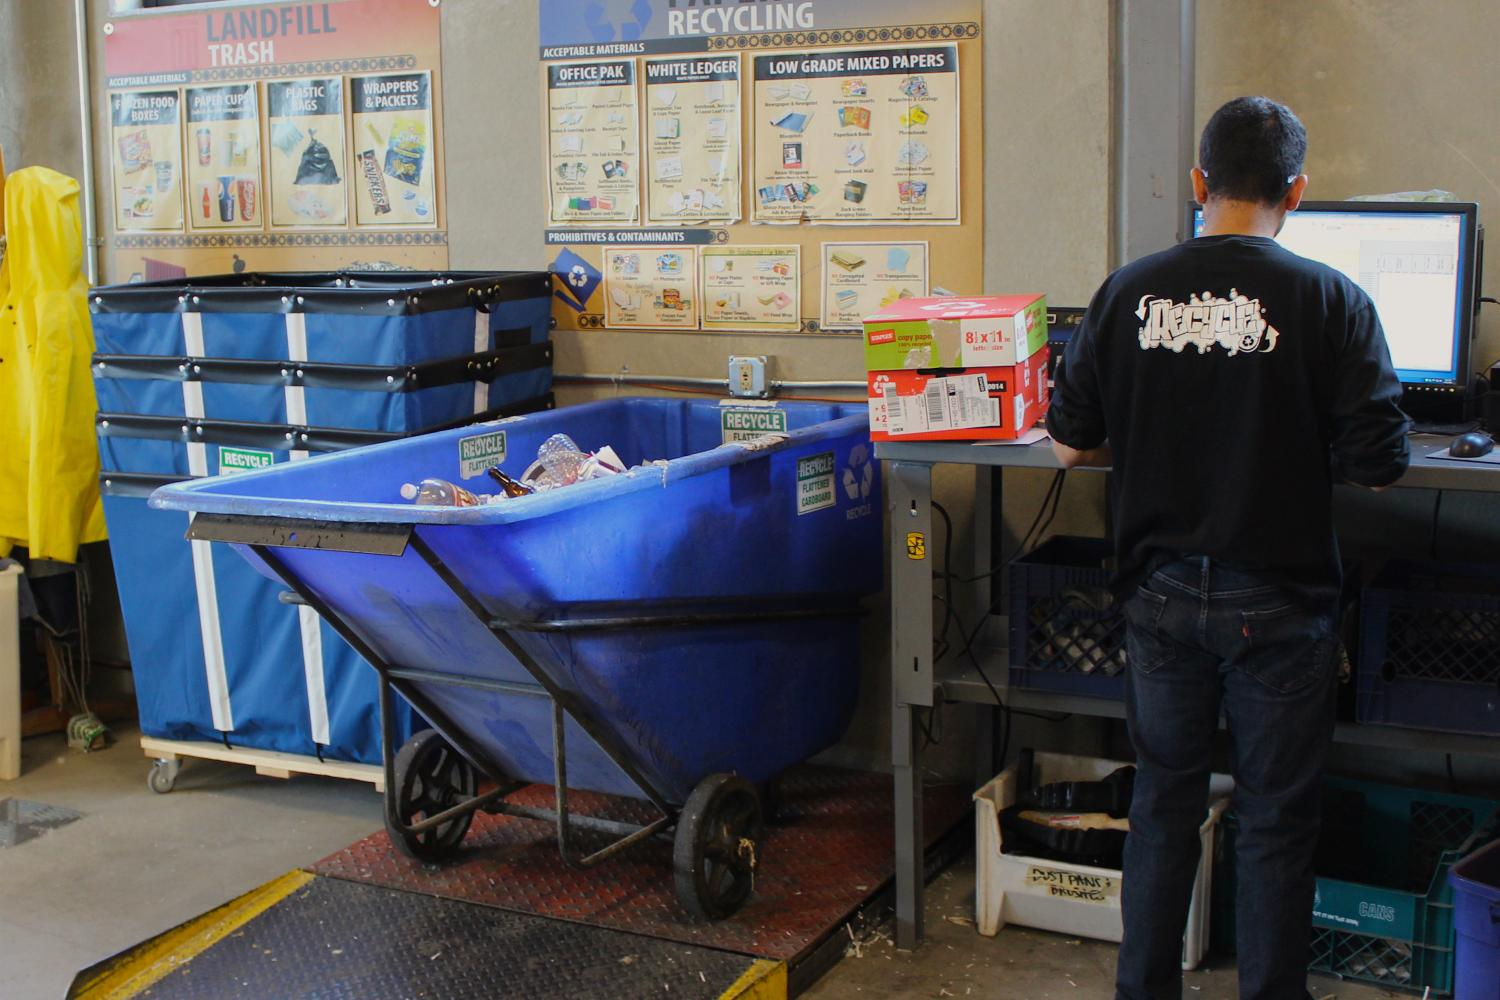 A student worker weighs a full tip cart of recycling